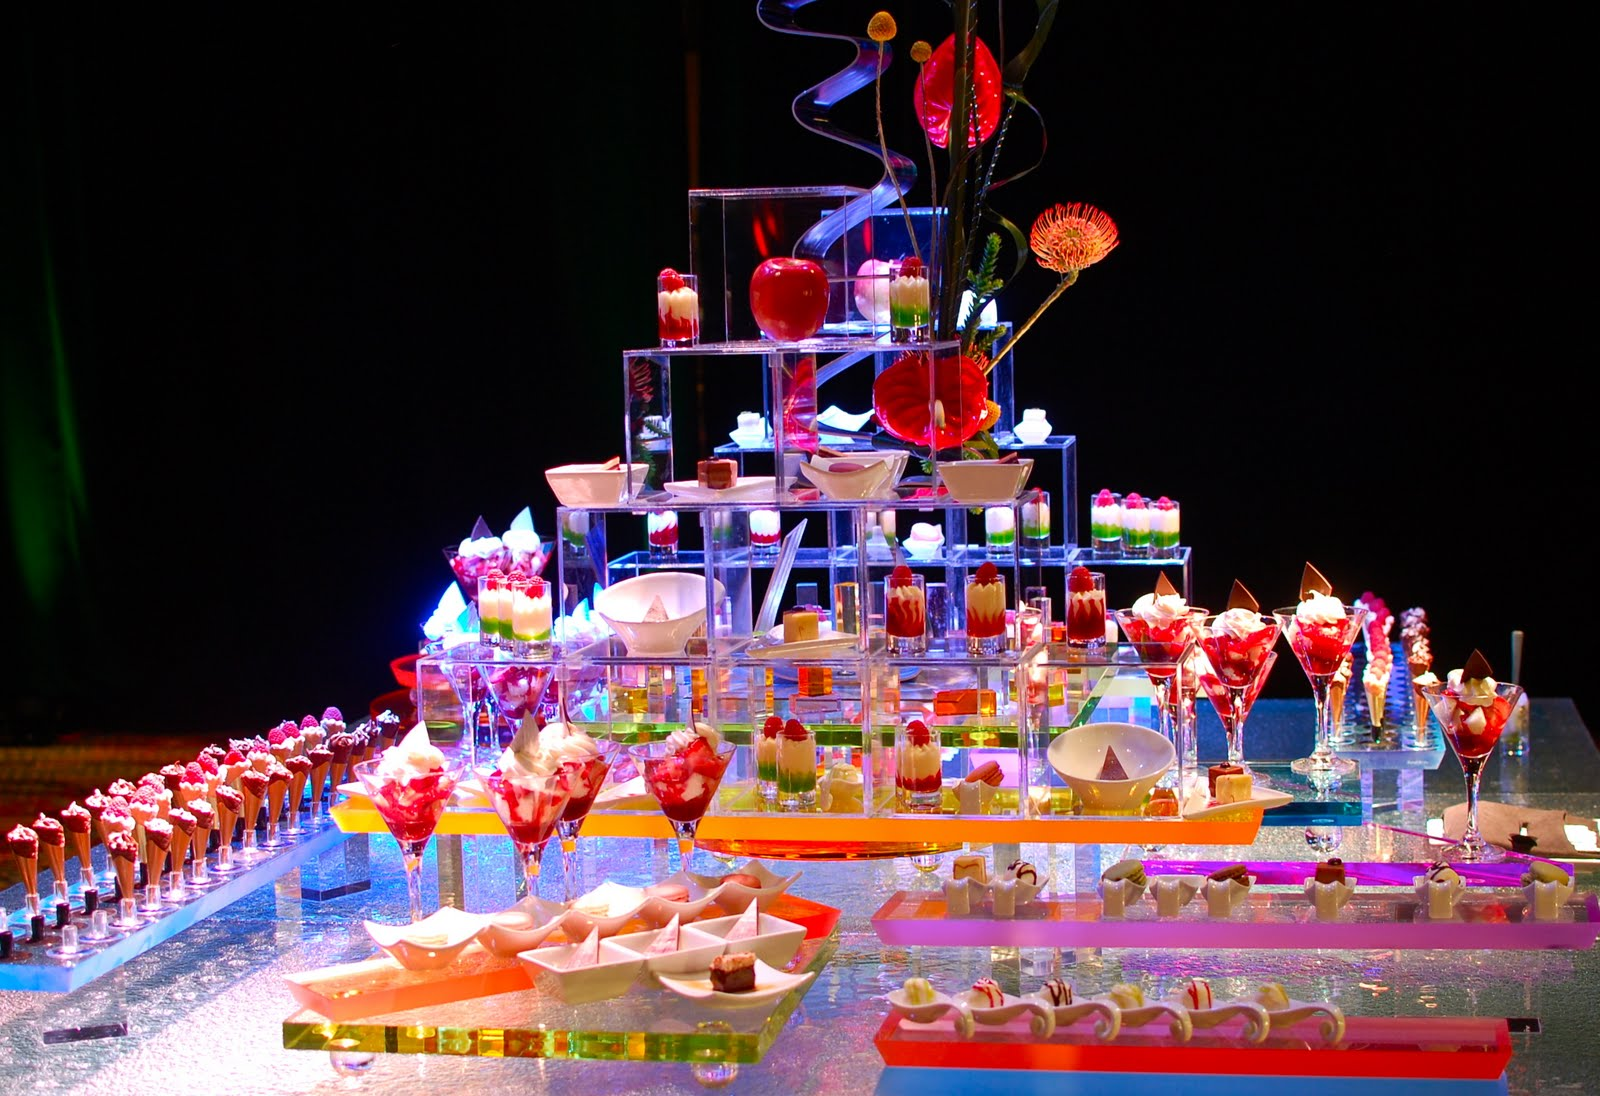 Food Buffet Displays http://myhotellife.blogspot.com/2011/07/food-sex-june.html